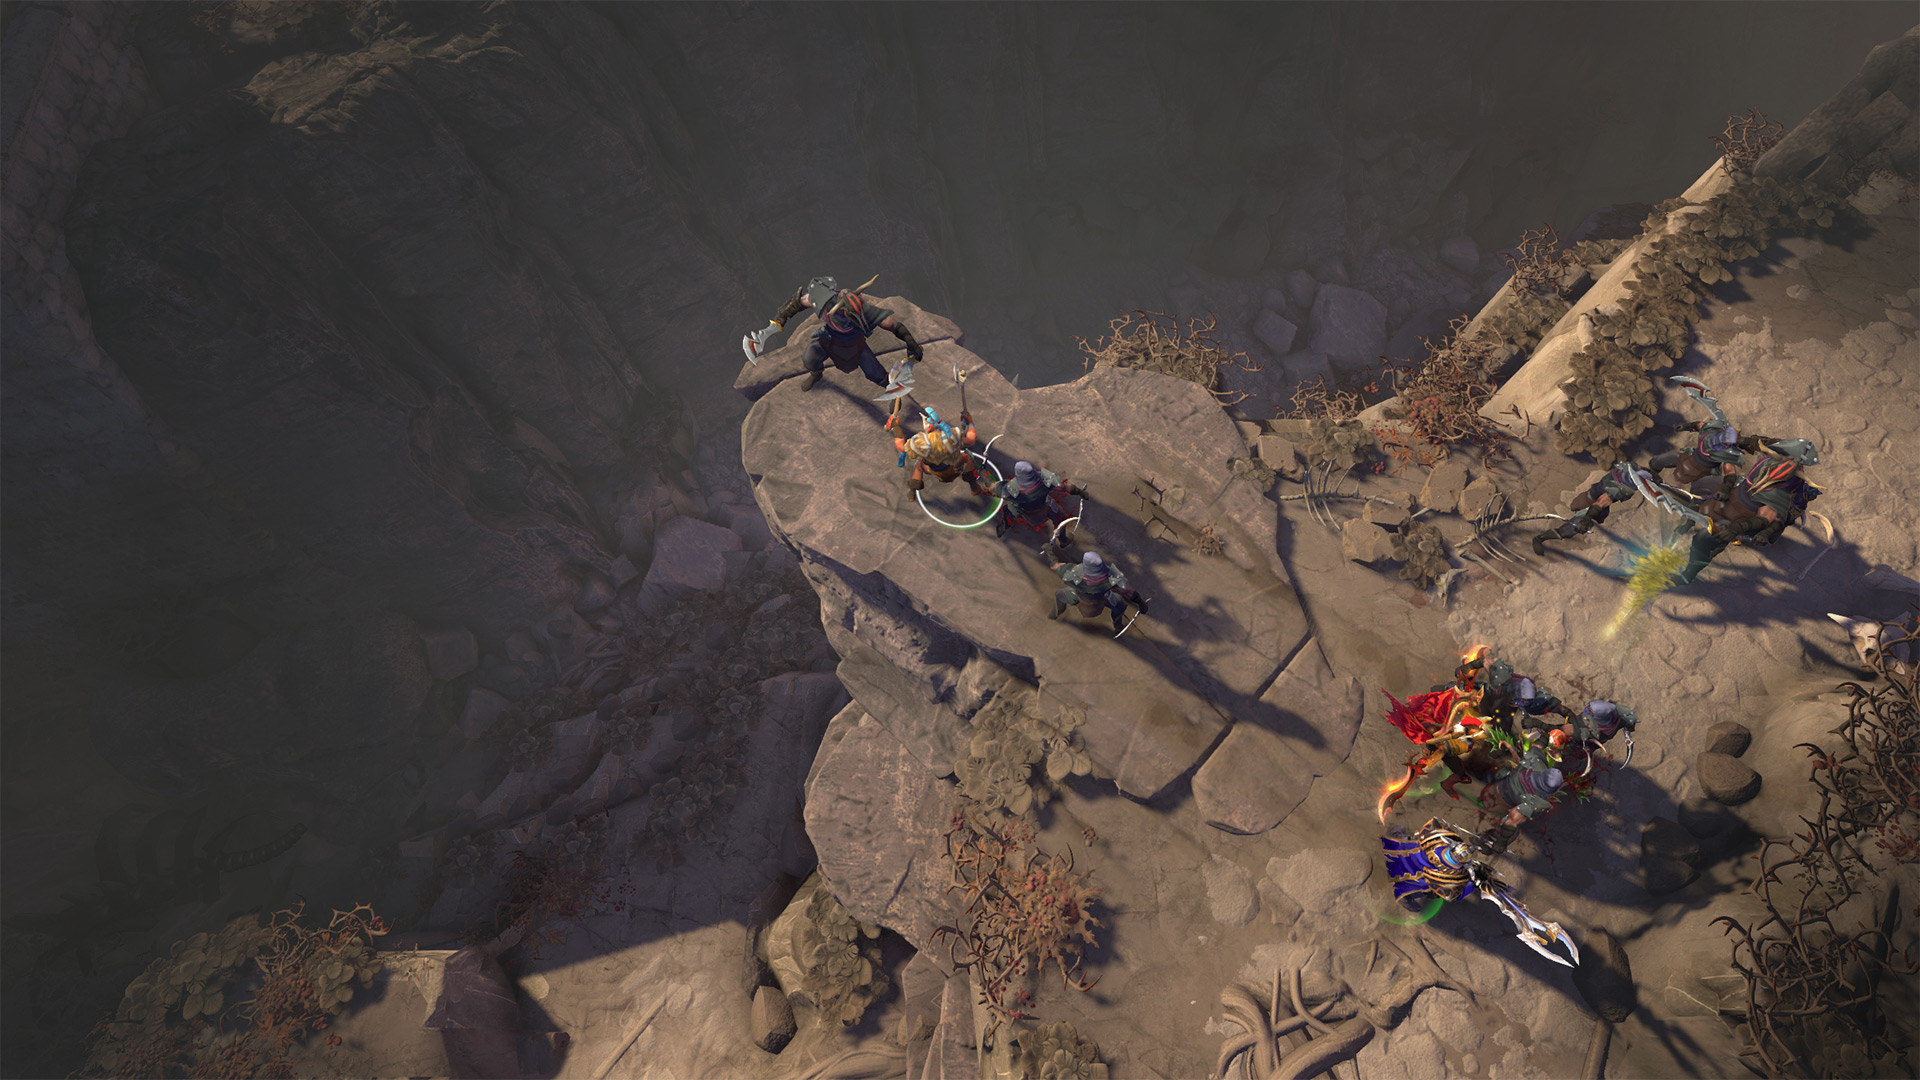 Dota 2 To Receive A Co-op Campaign in May